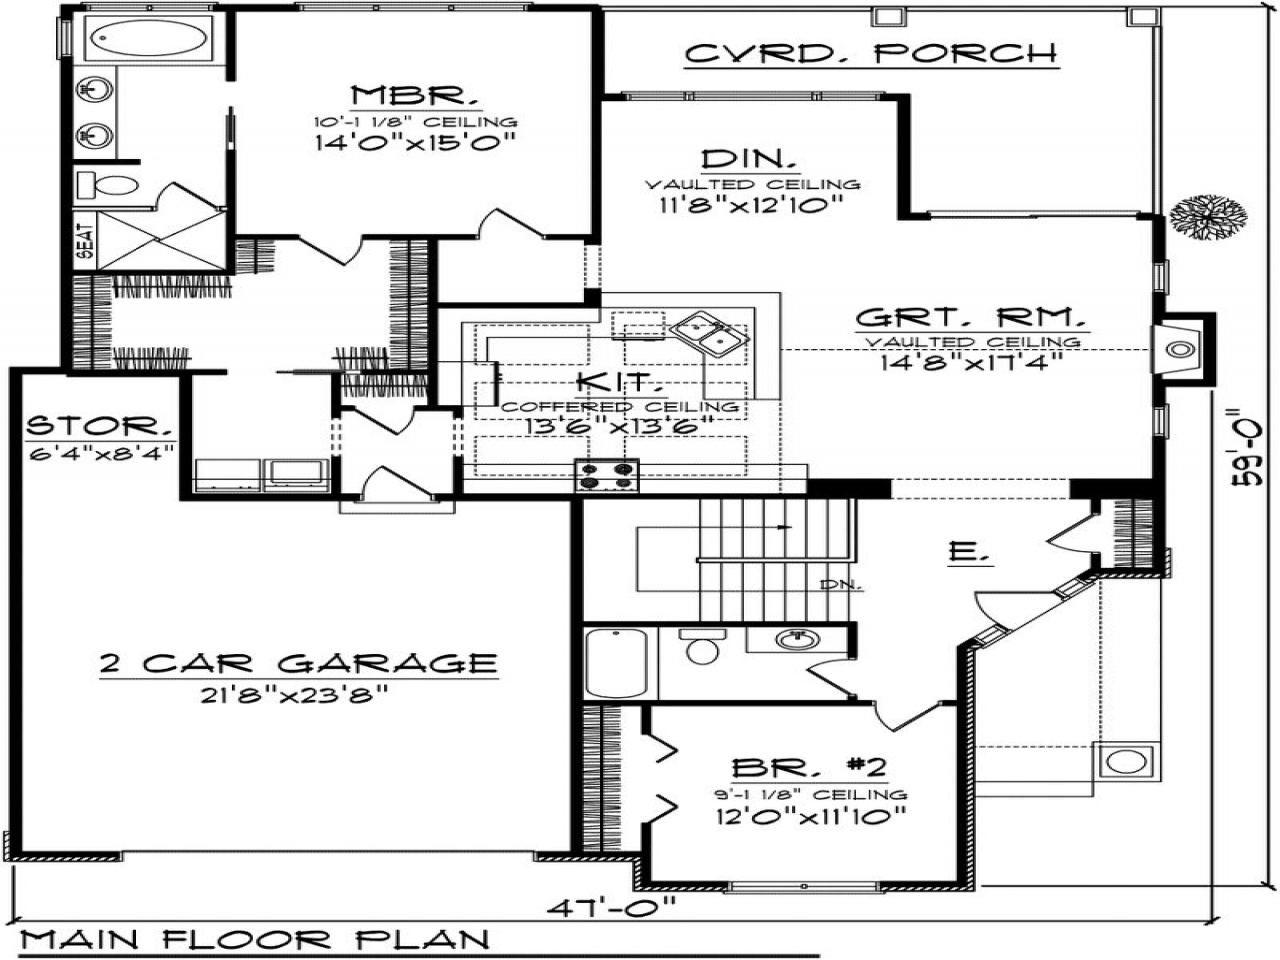 2 Bedroom Bungalow Floor Plans: 2 Bedroom Cottage House Plans 2 Bedroom House Plans With